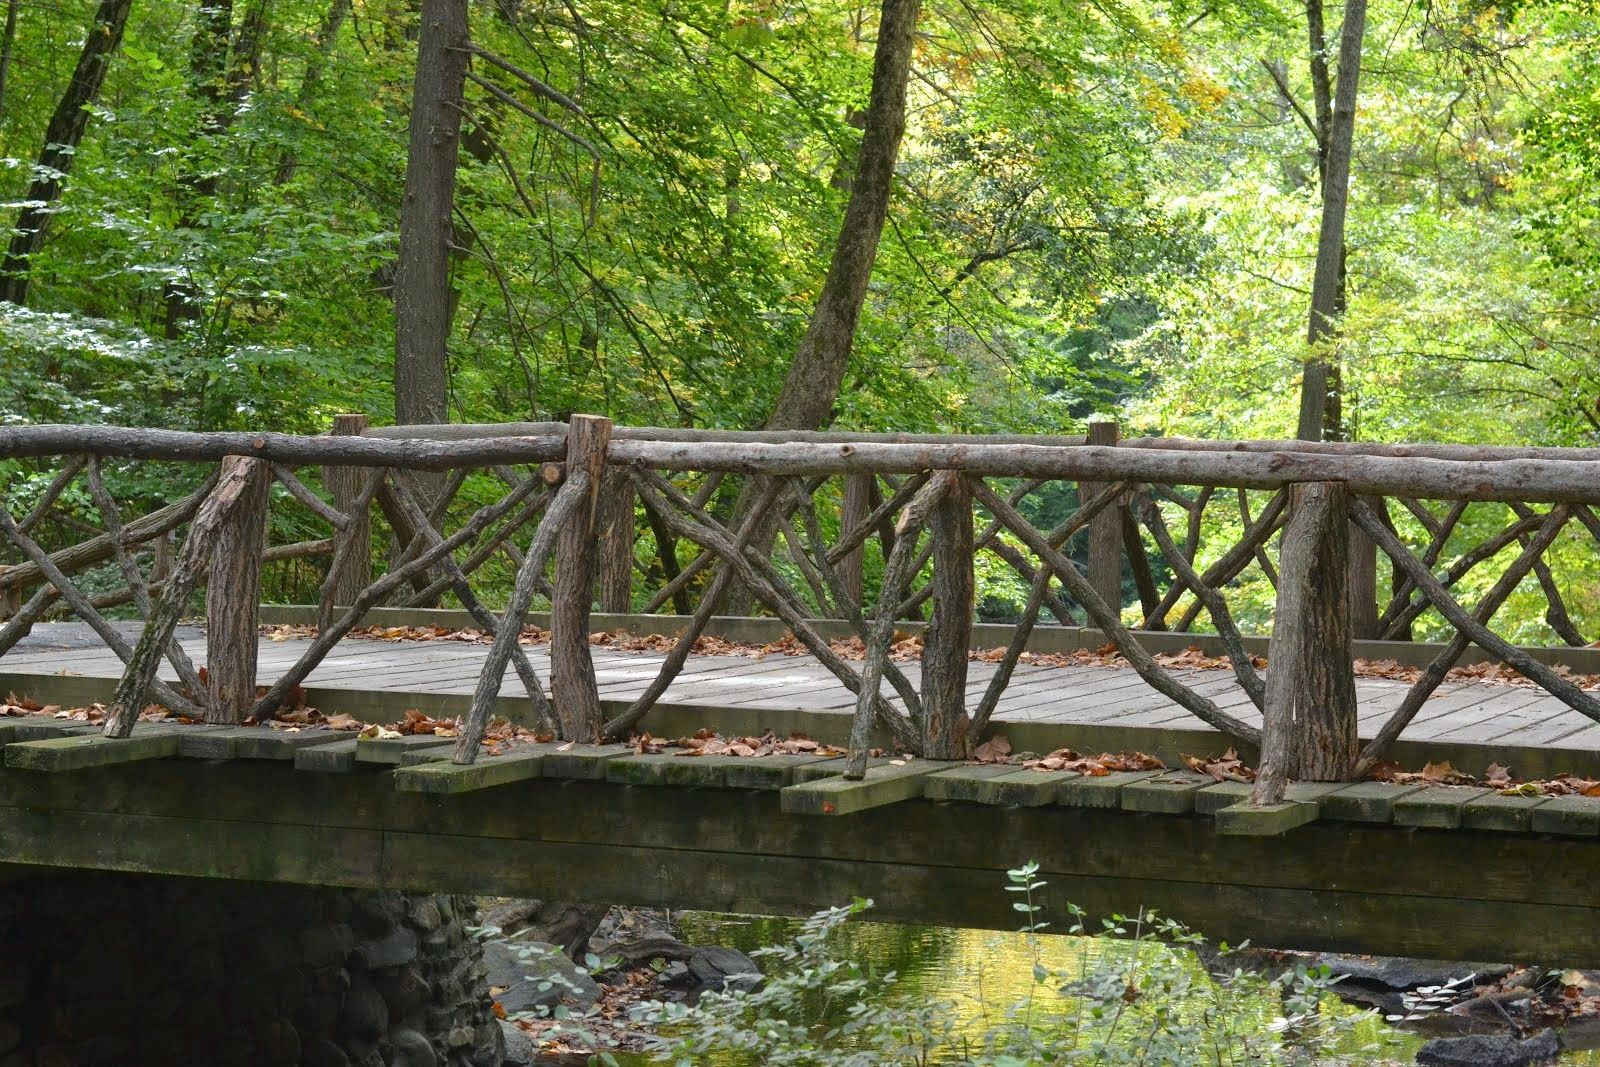 Bridge of the Headless Horseman